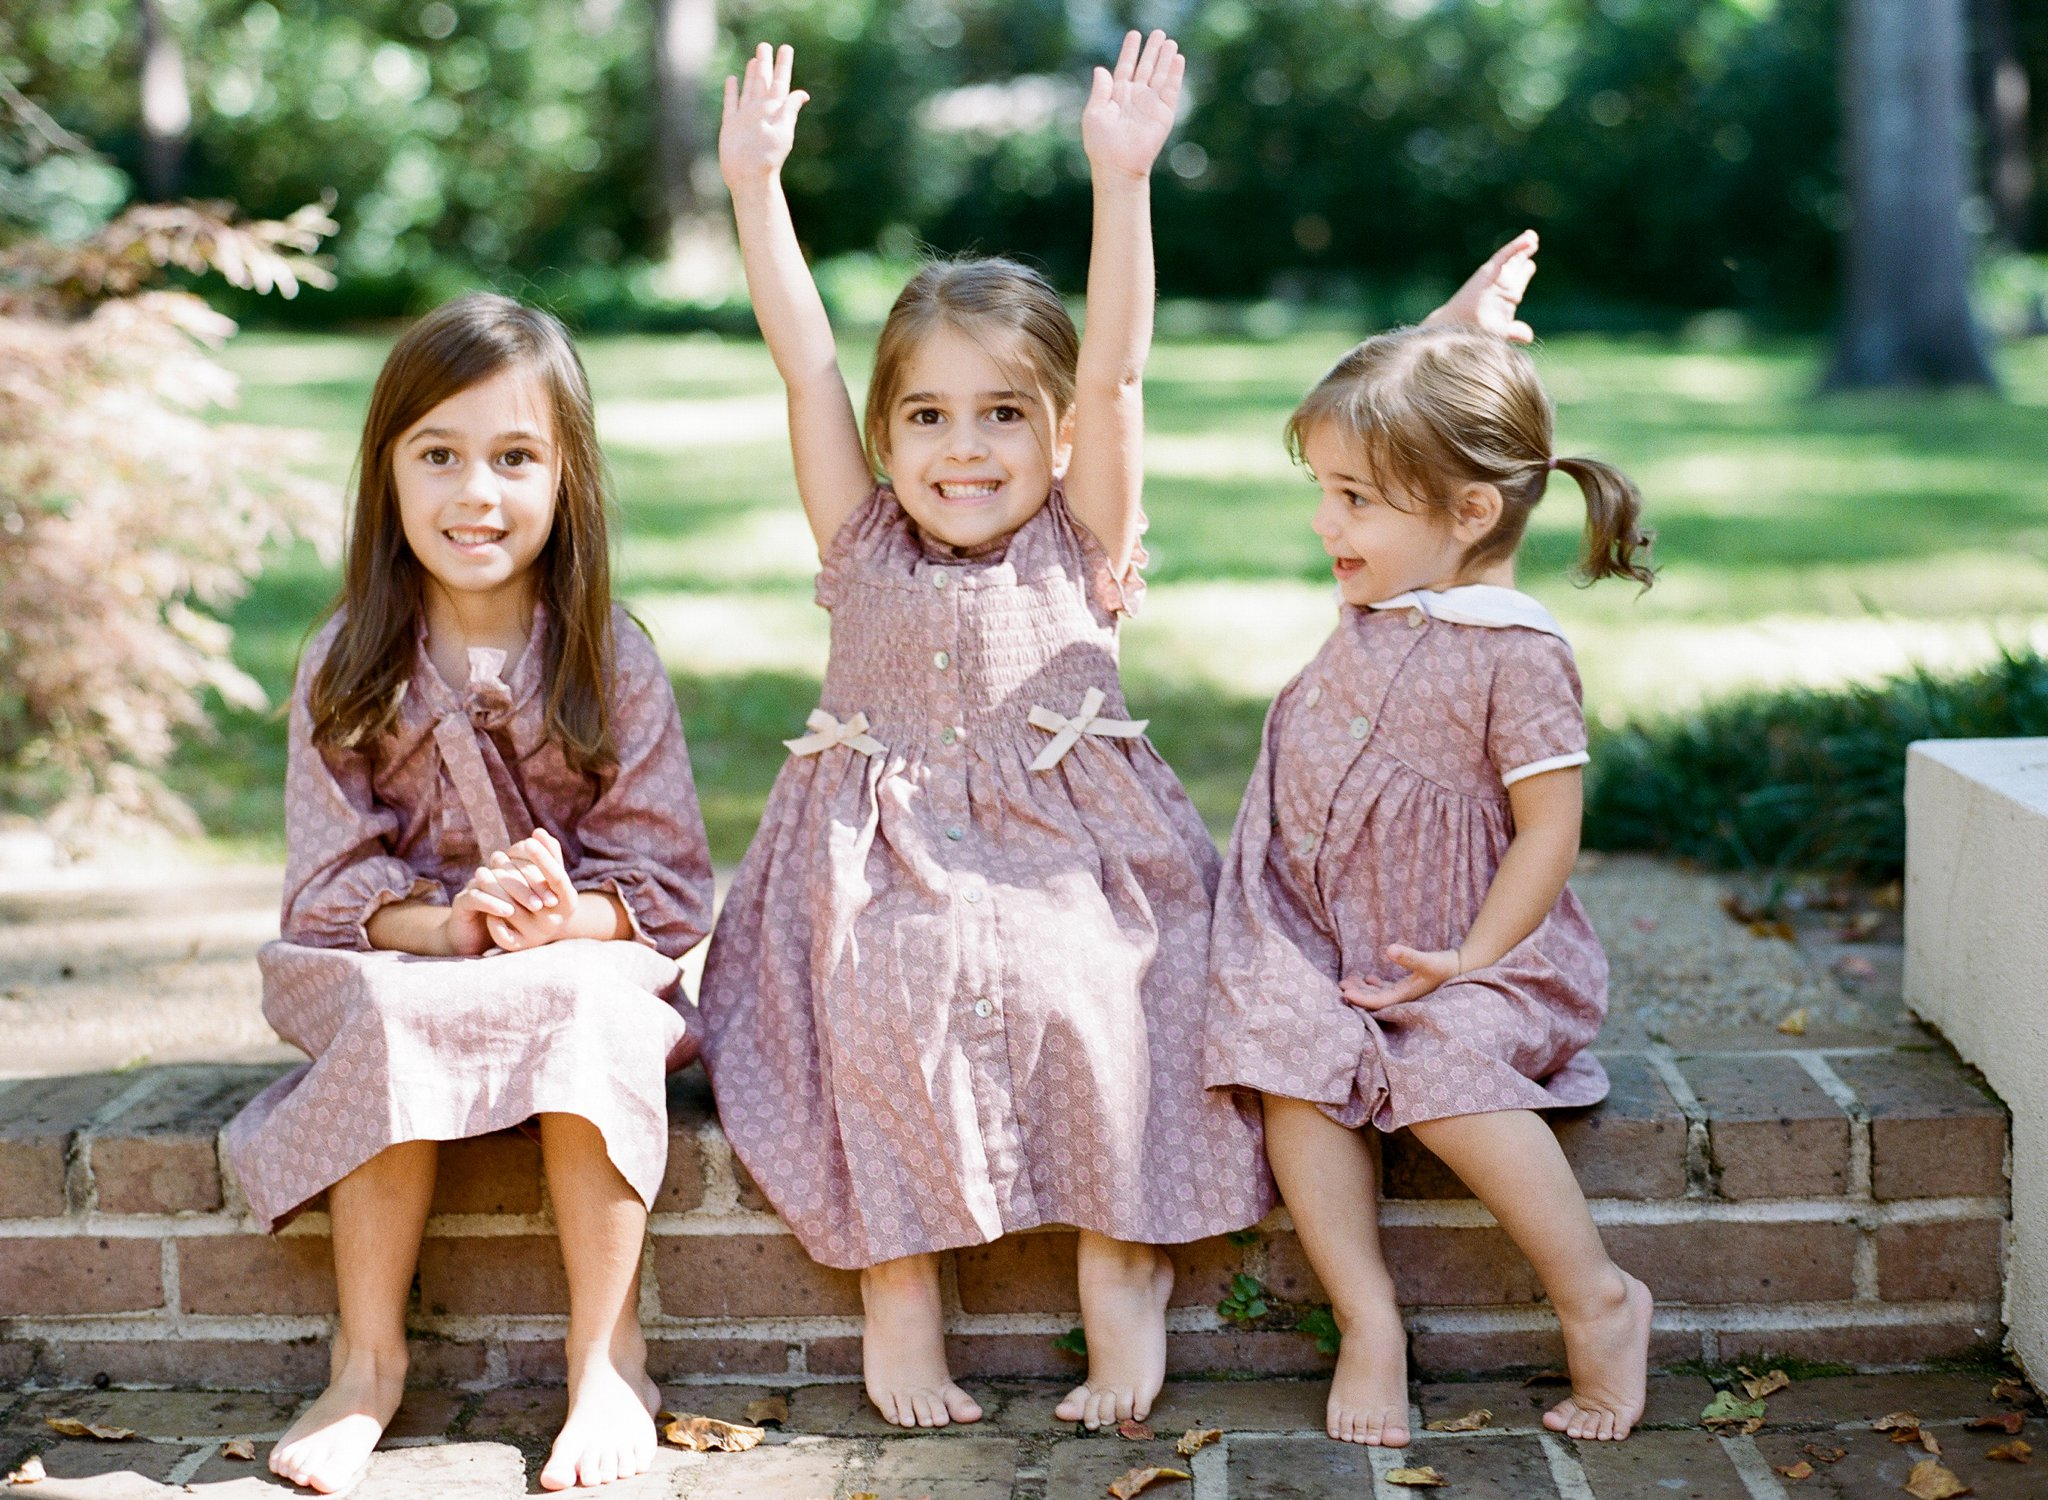 tallahassee family photographer shannon griffin photography_0037.jpg